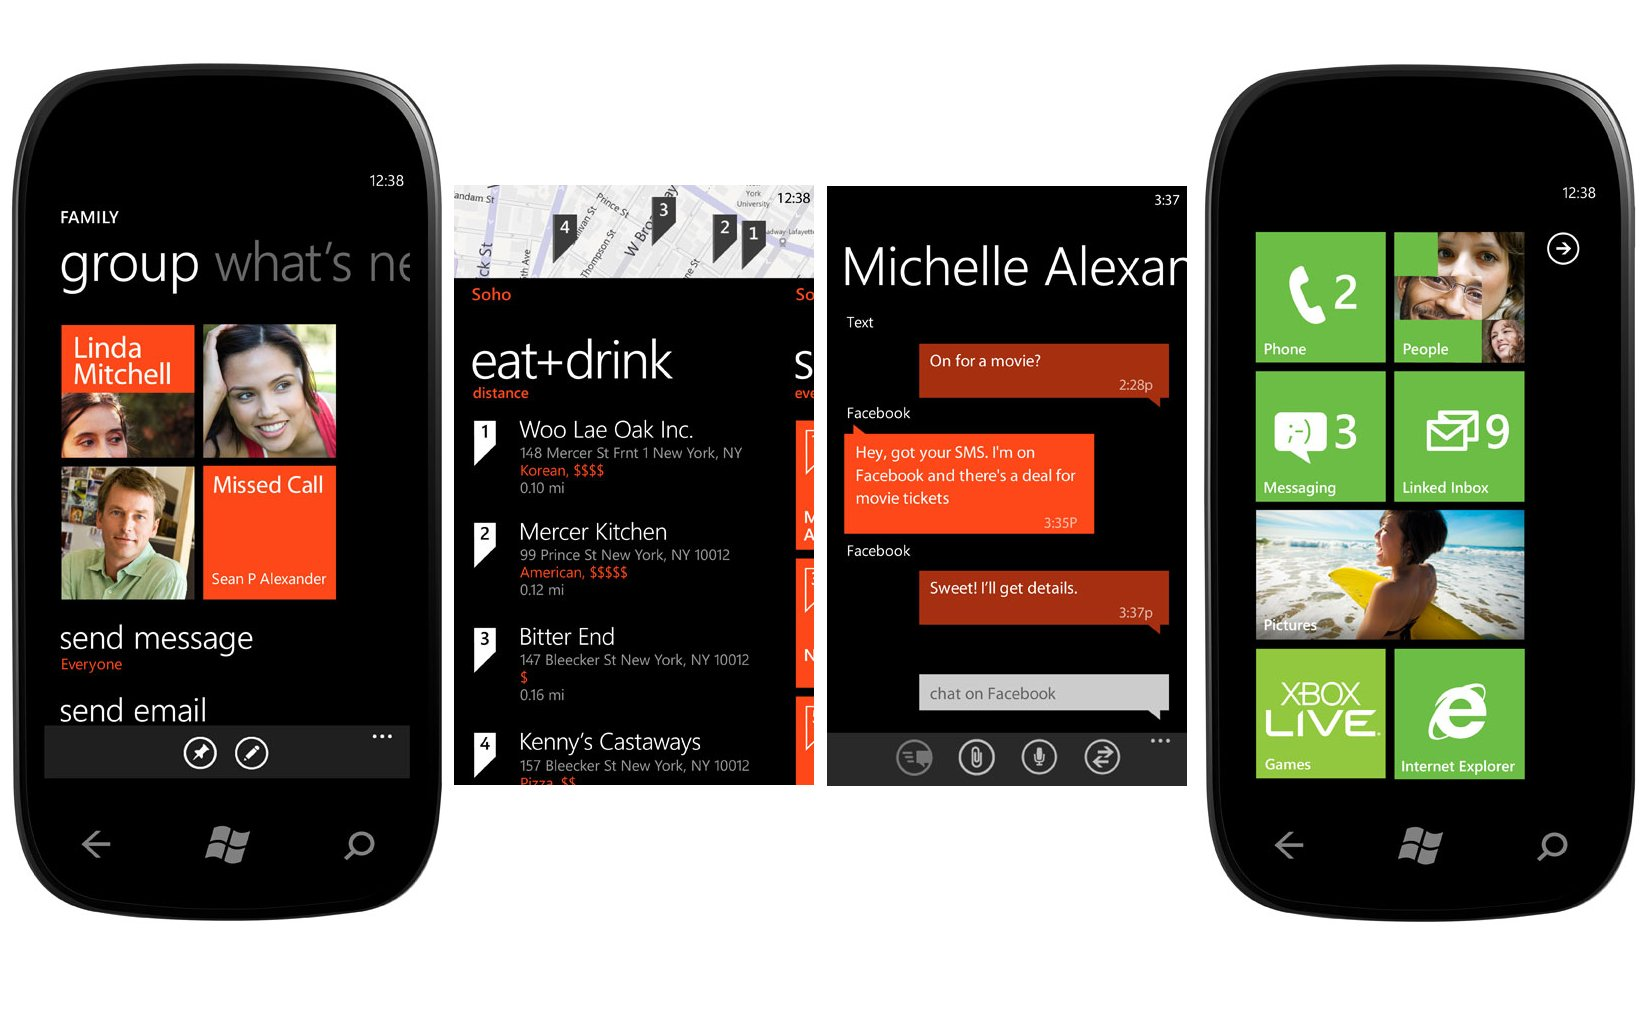 Windows Phone 7.5 Tango